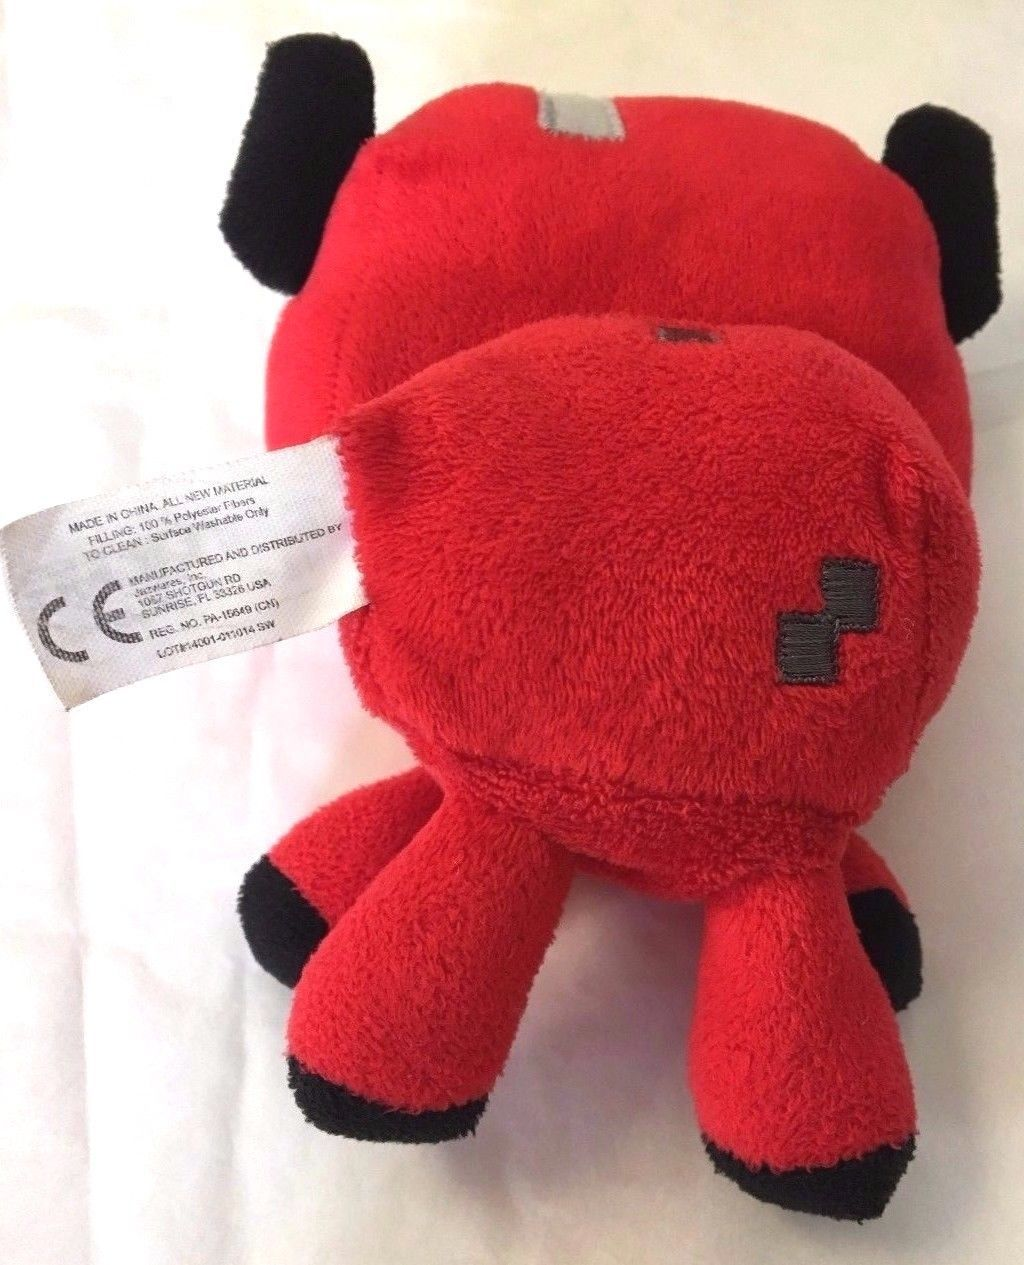 Minecraft Baby Mooshroom Plush Minecraft Animal Series 5 Inch Red Cow by Mojang